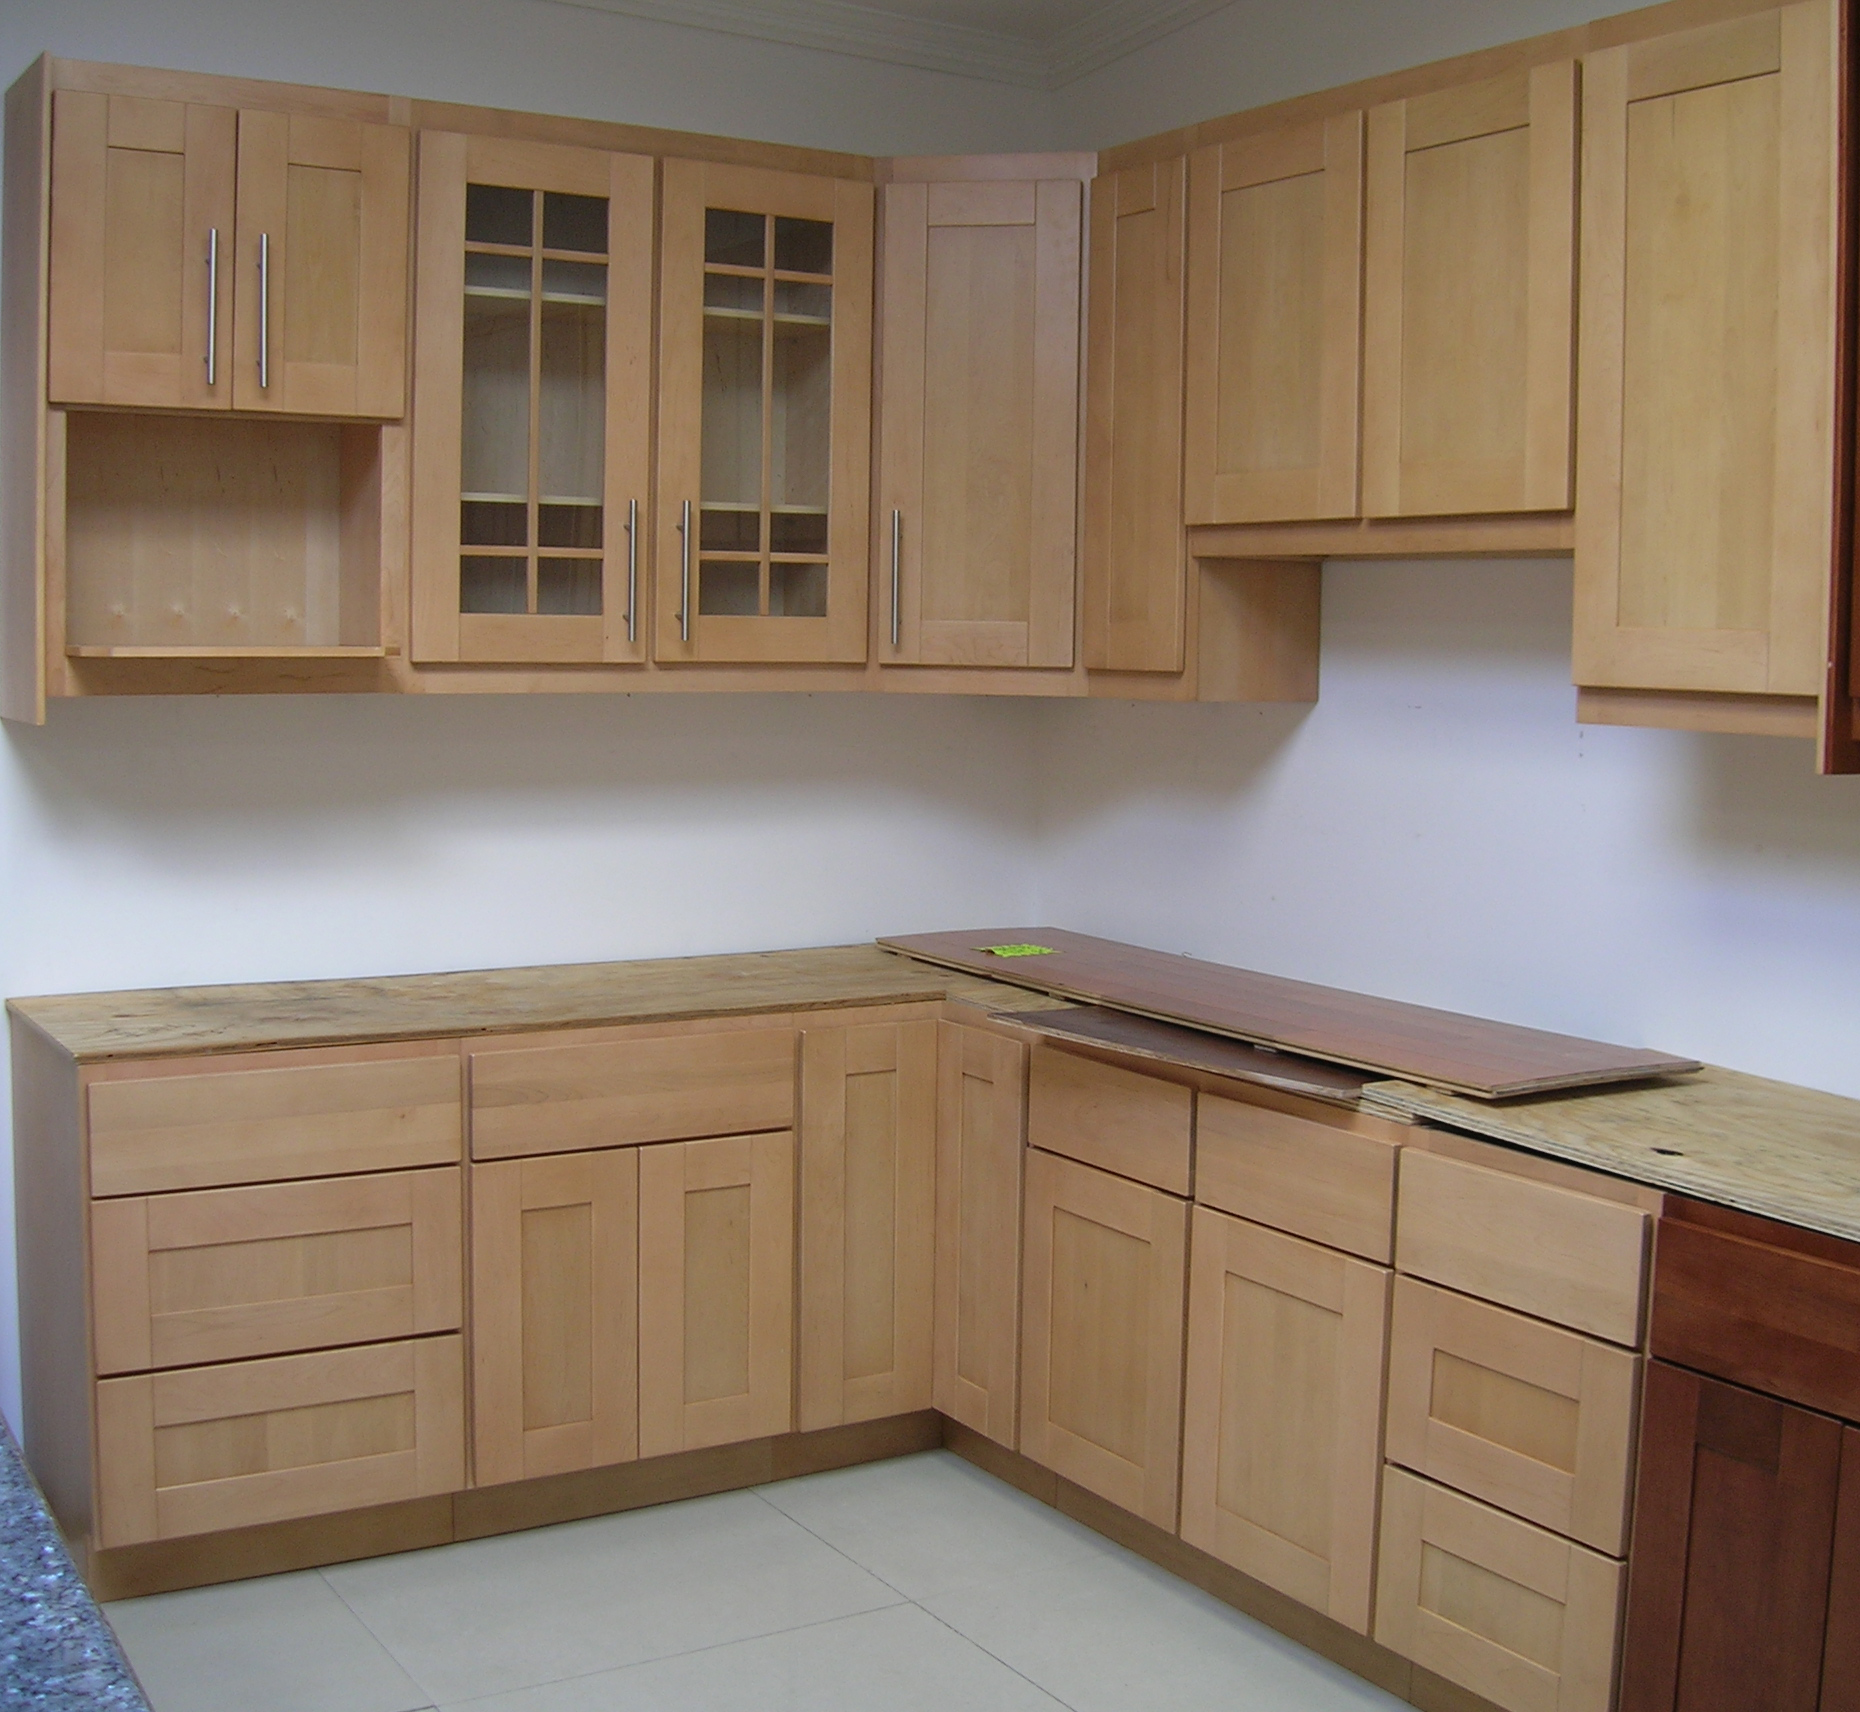 Contemporary kitchen cabinets wholesale priced kitchen for Modern kitchen units